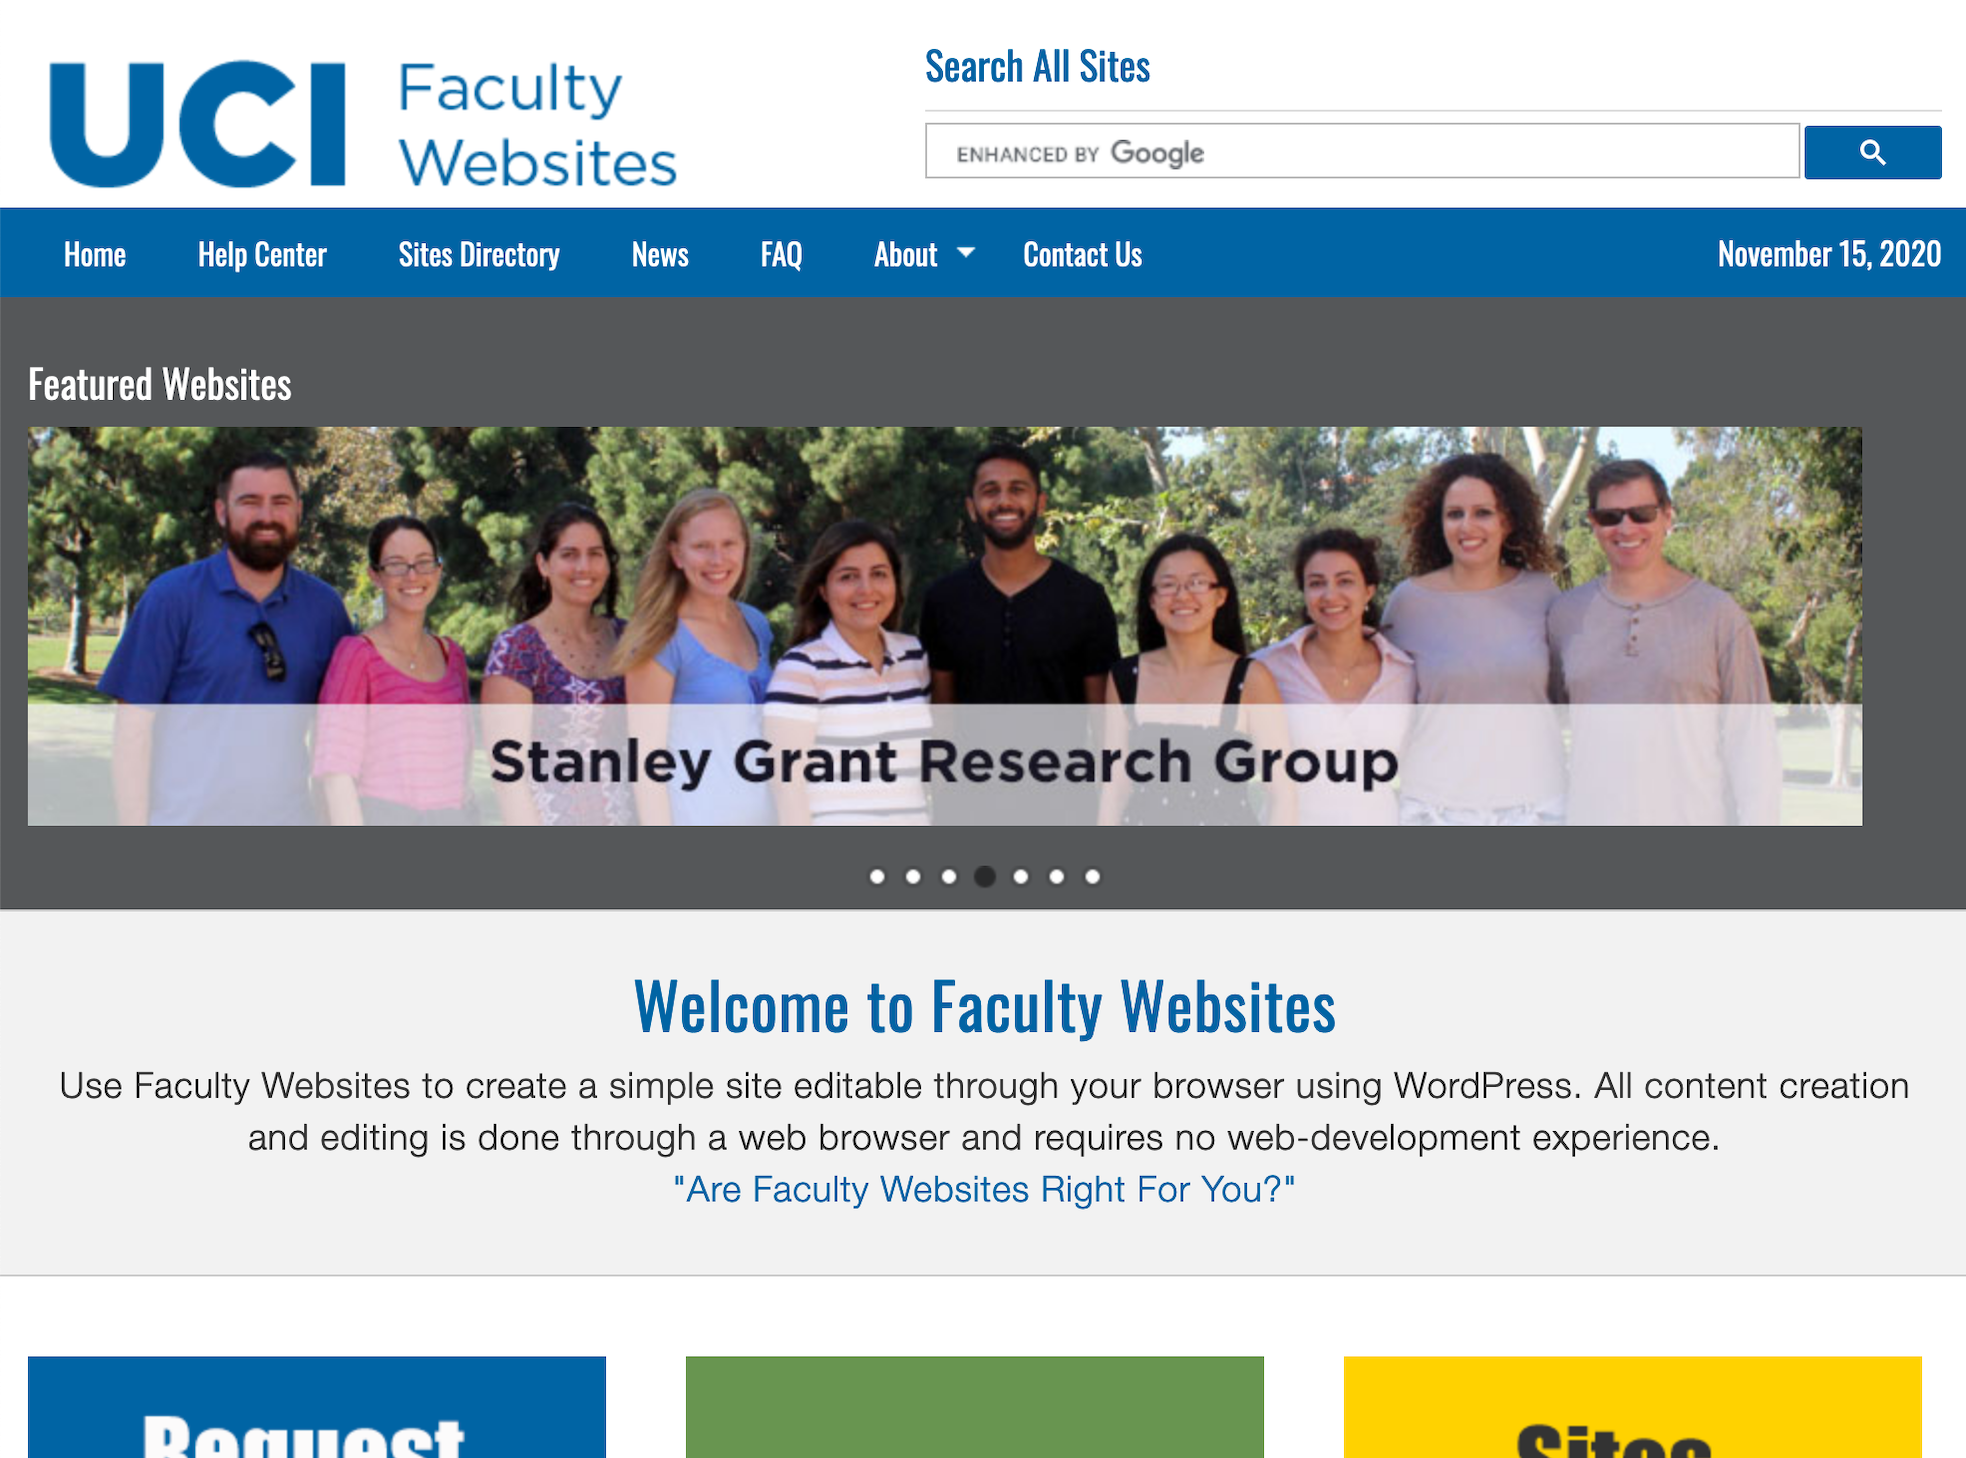 Faculty Websites